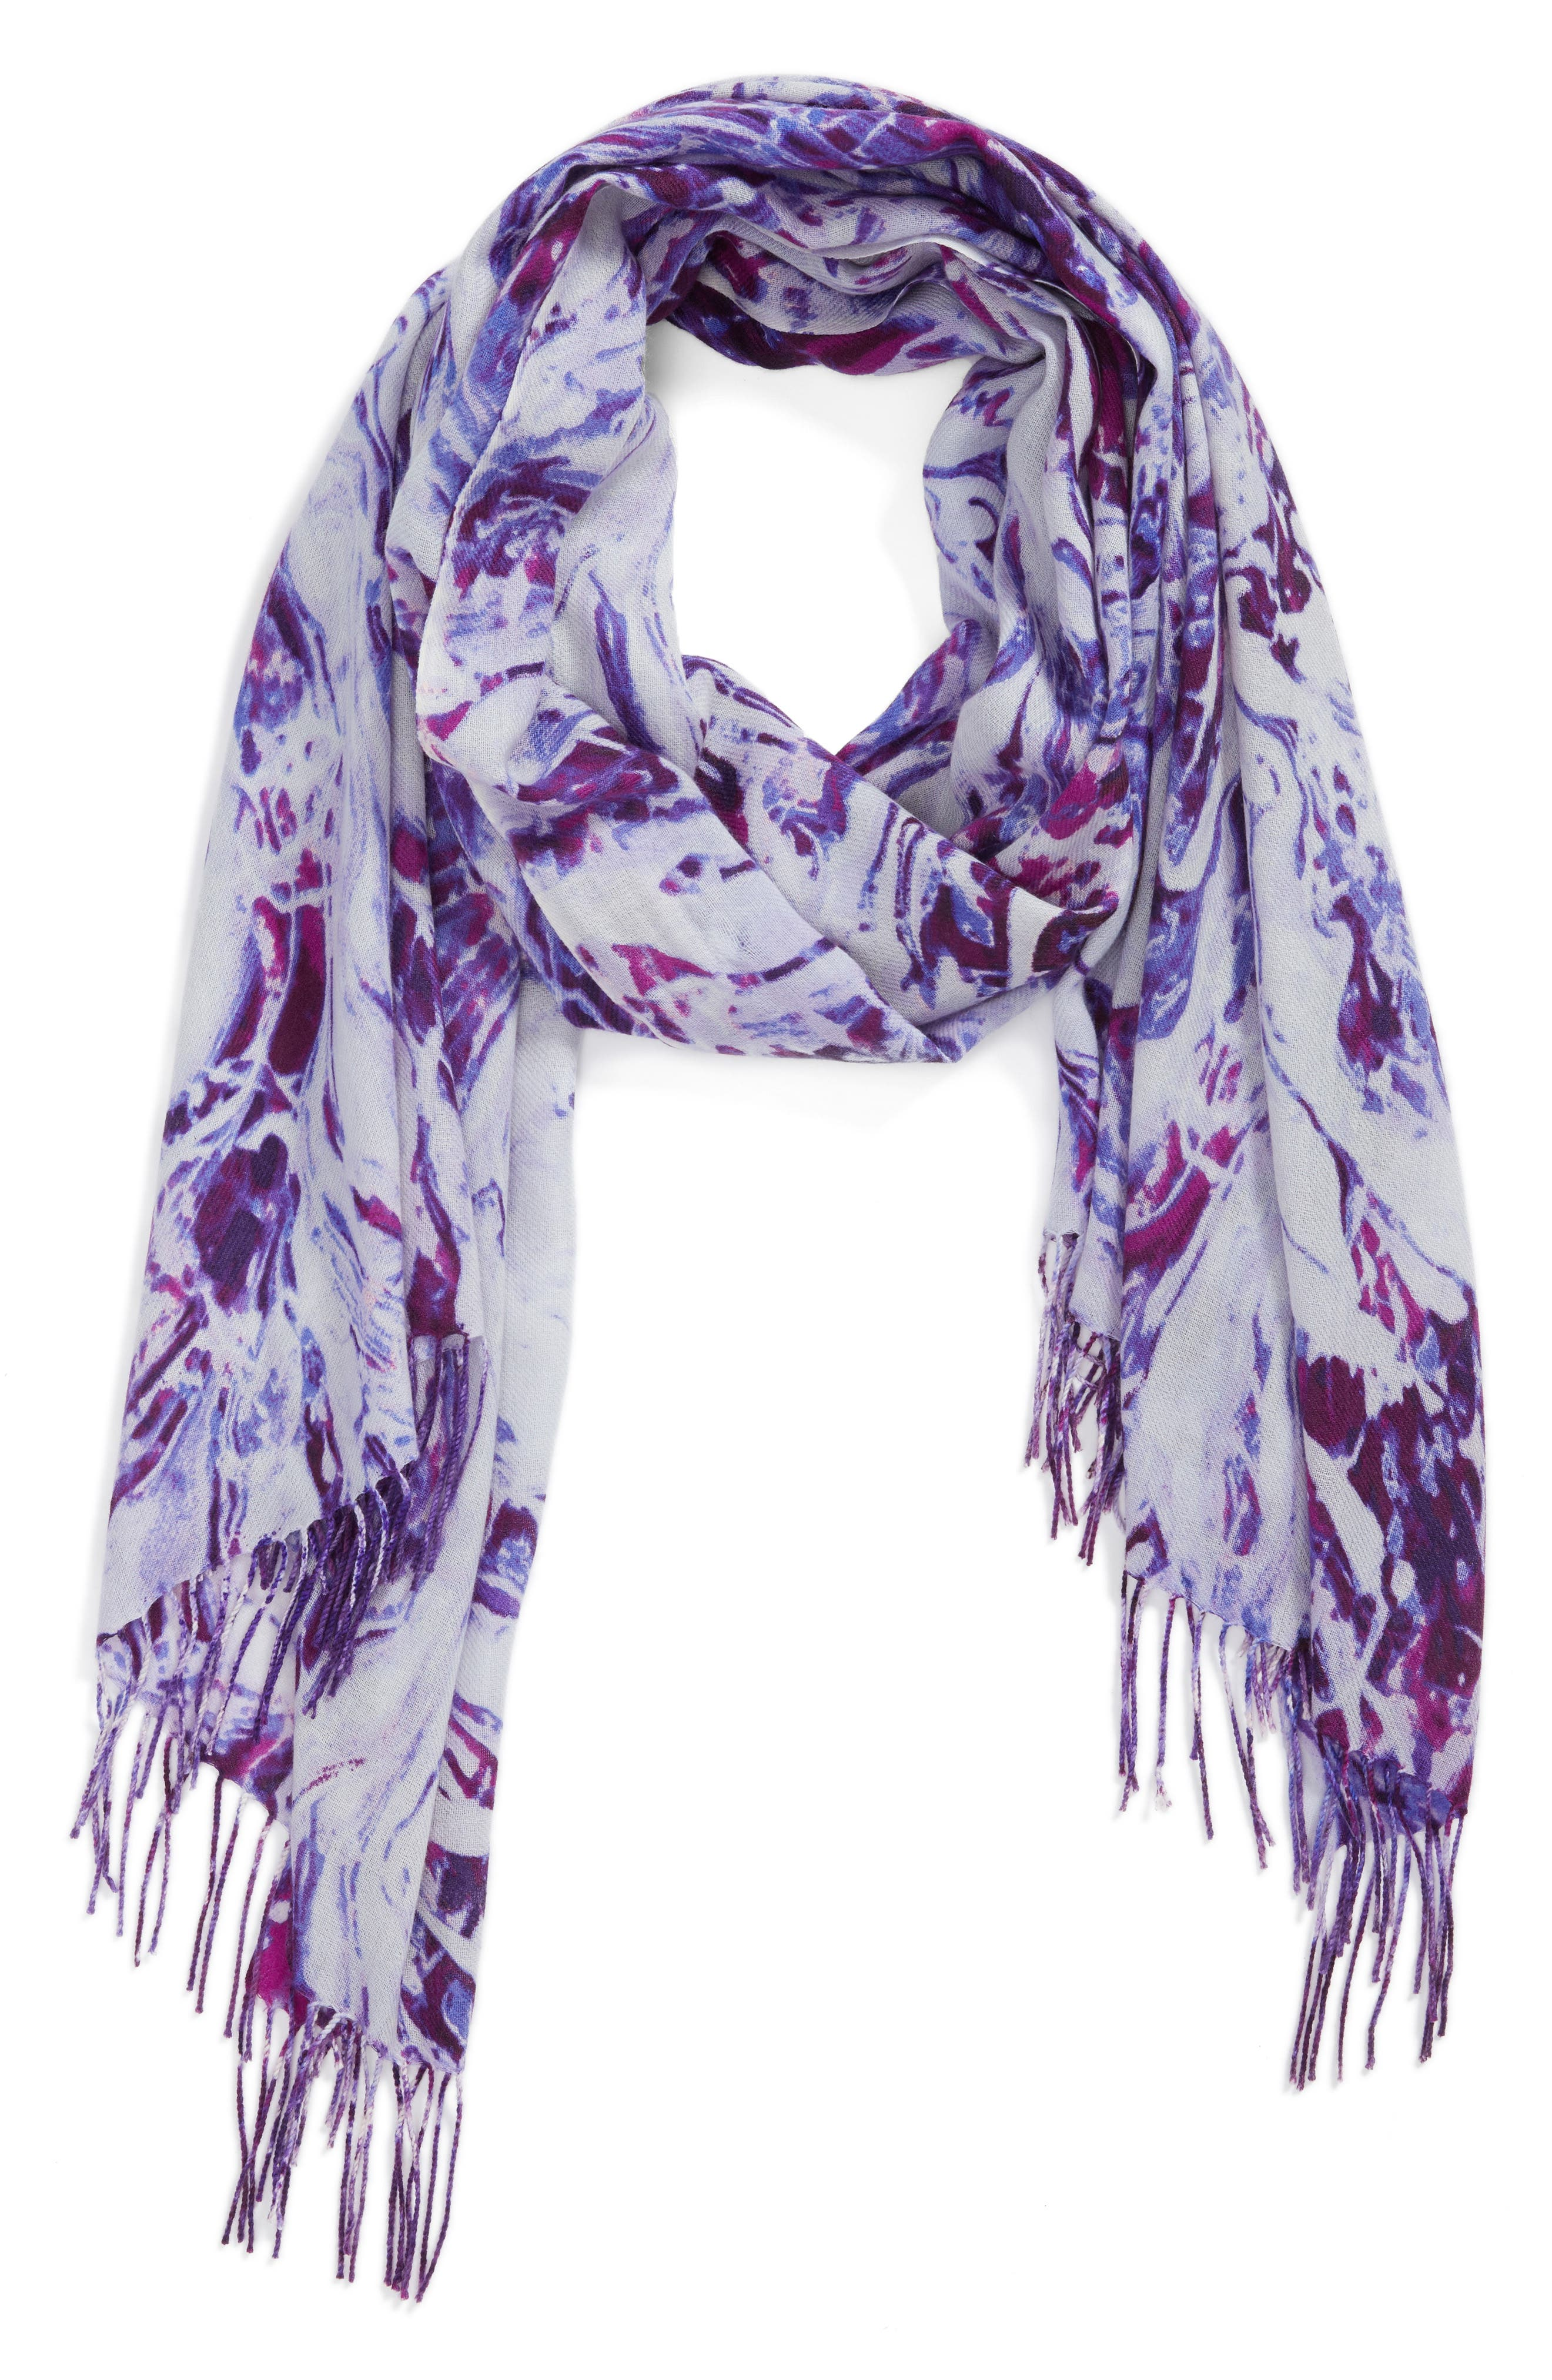 Marble Tissue Wool & Cashmere Scarf,                             Alternate thumbnail 7, color,